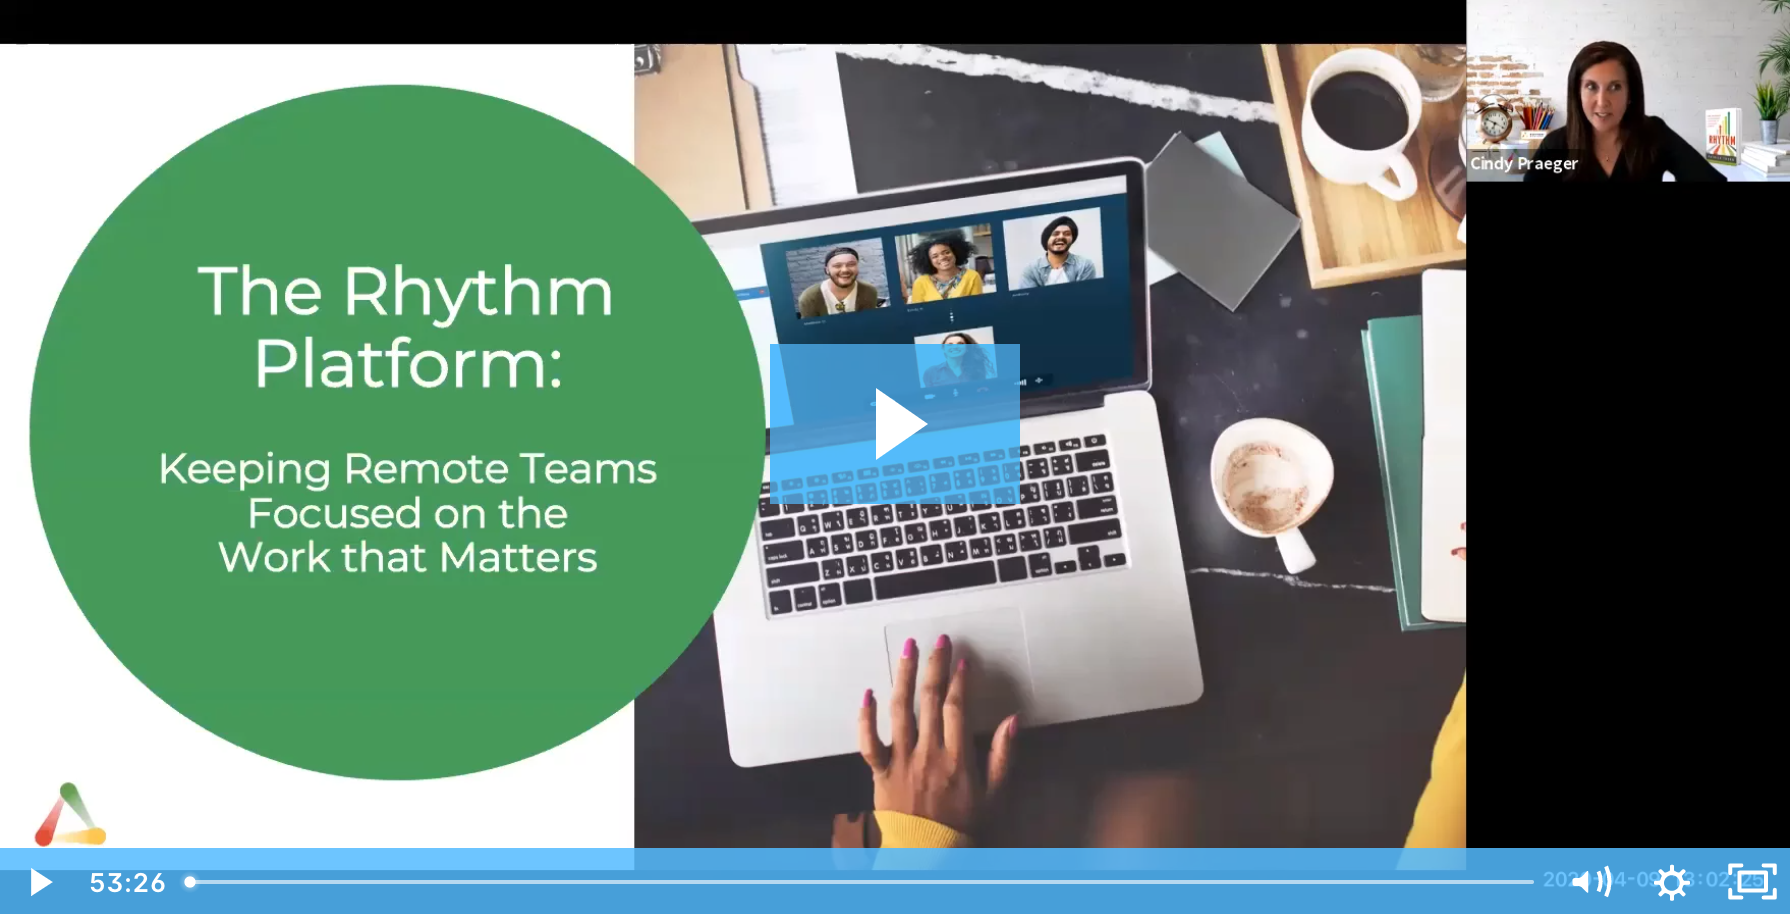 The Rhythm Platform: Keeping Remote Teams Focused on the Work that Matters